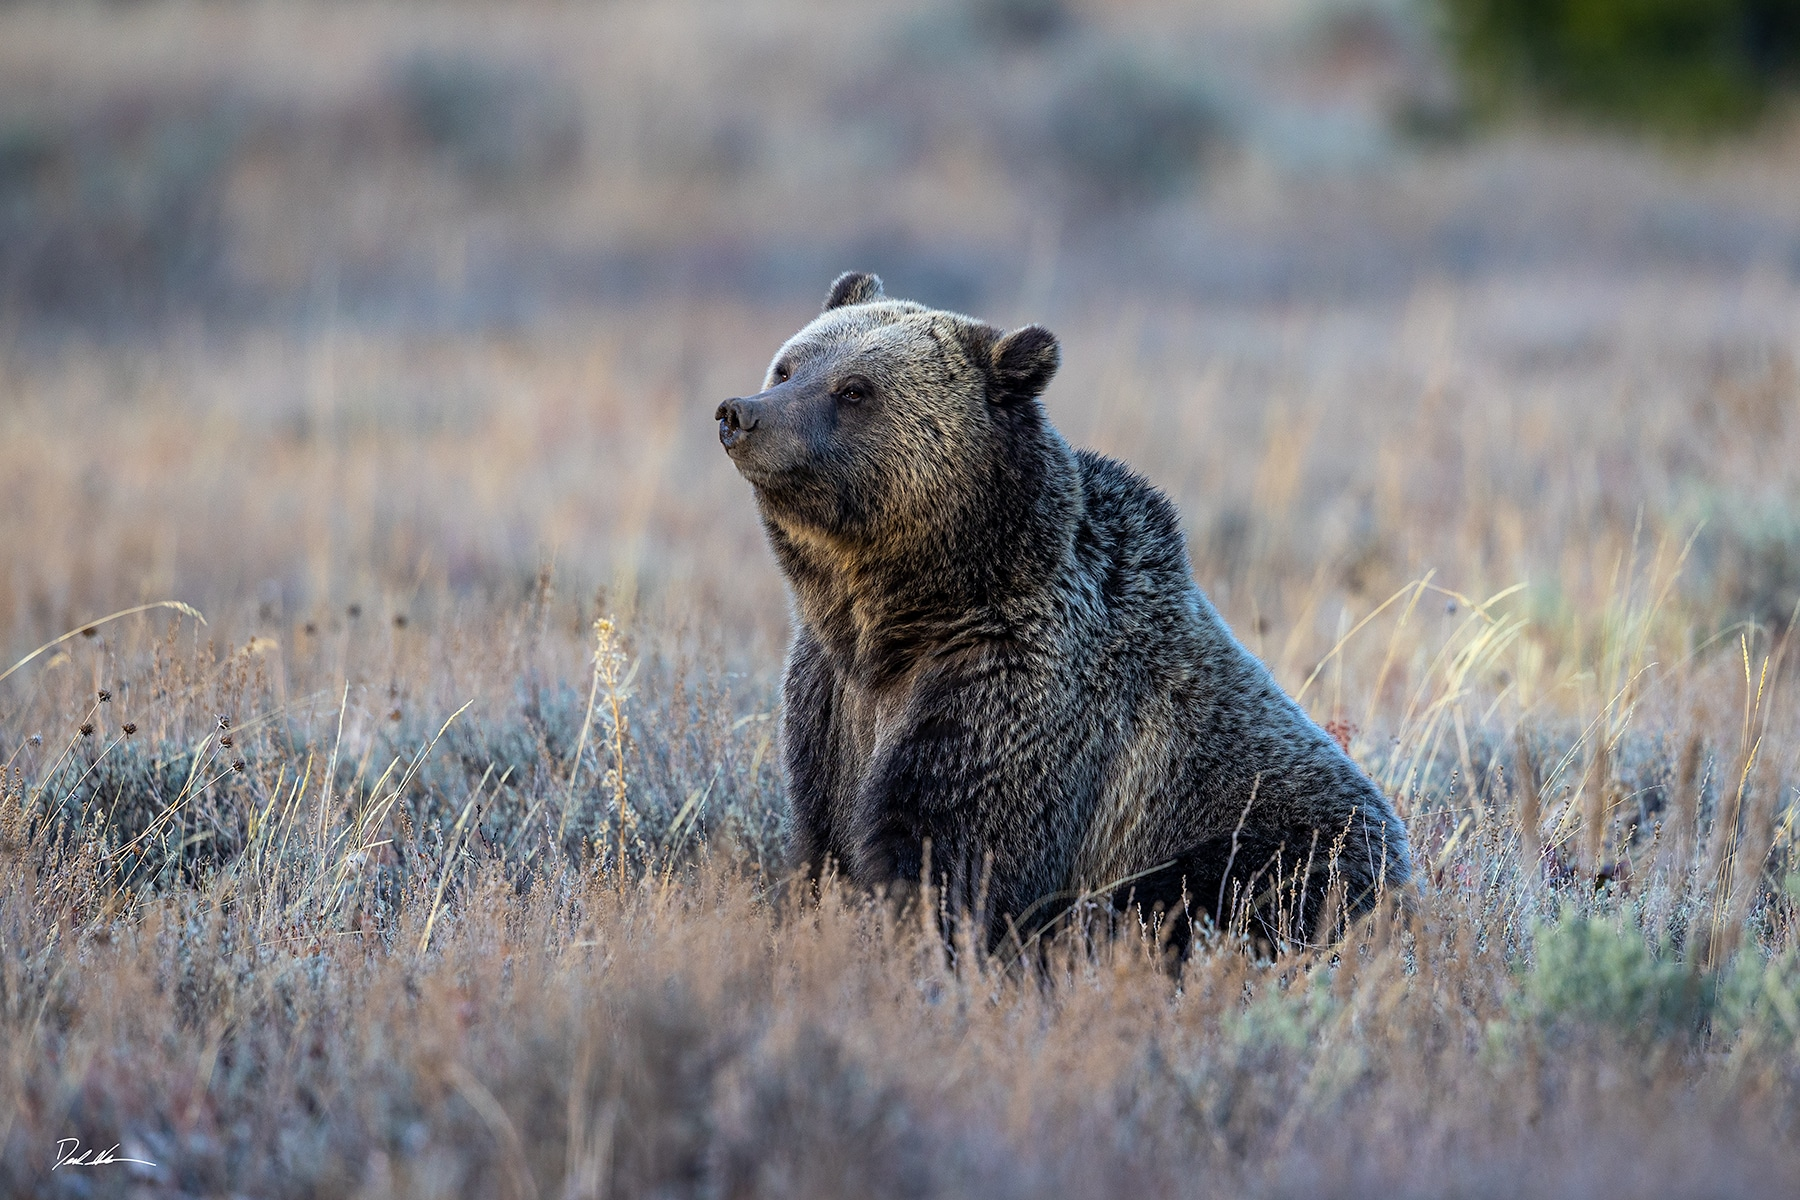 Large grizzly bear sitting in a field